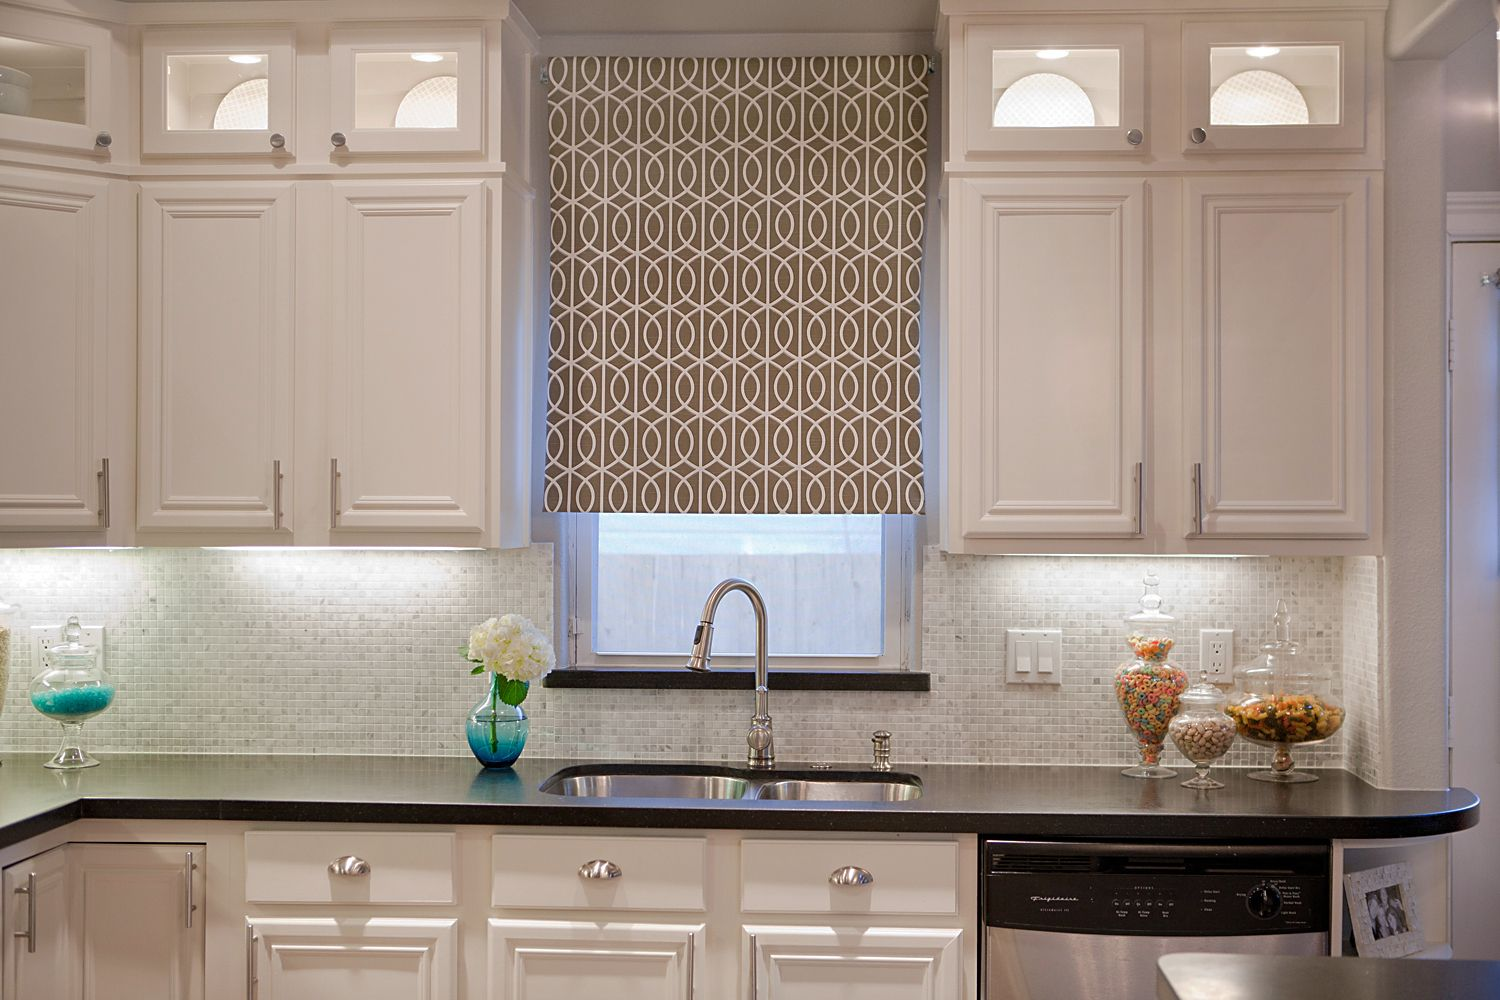 After Posting Our Kitchen Remodel Is Complete I Received Several Emails Regarding Roman Shadeswhite